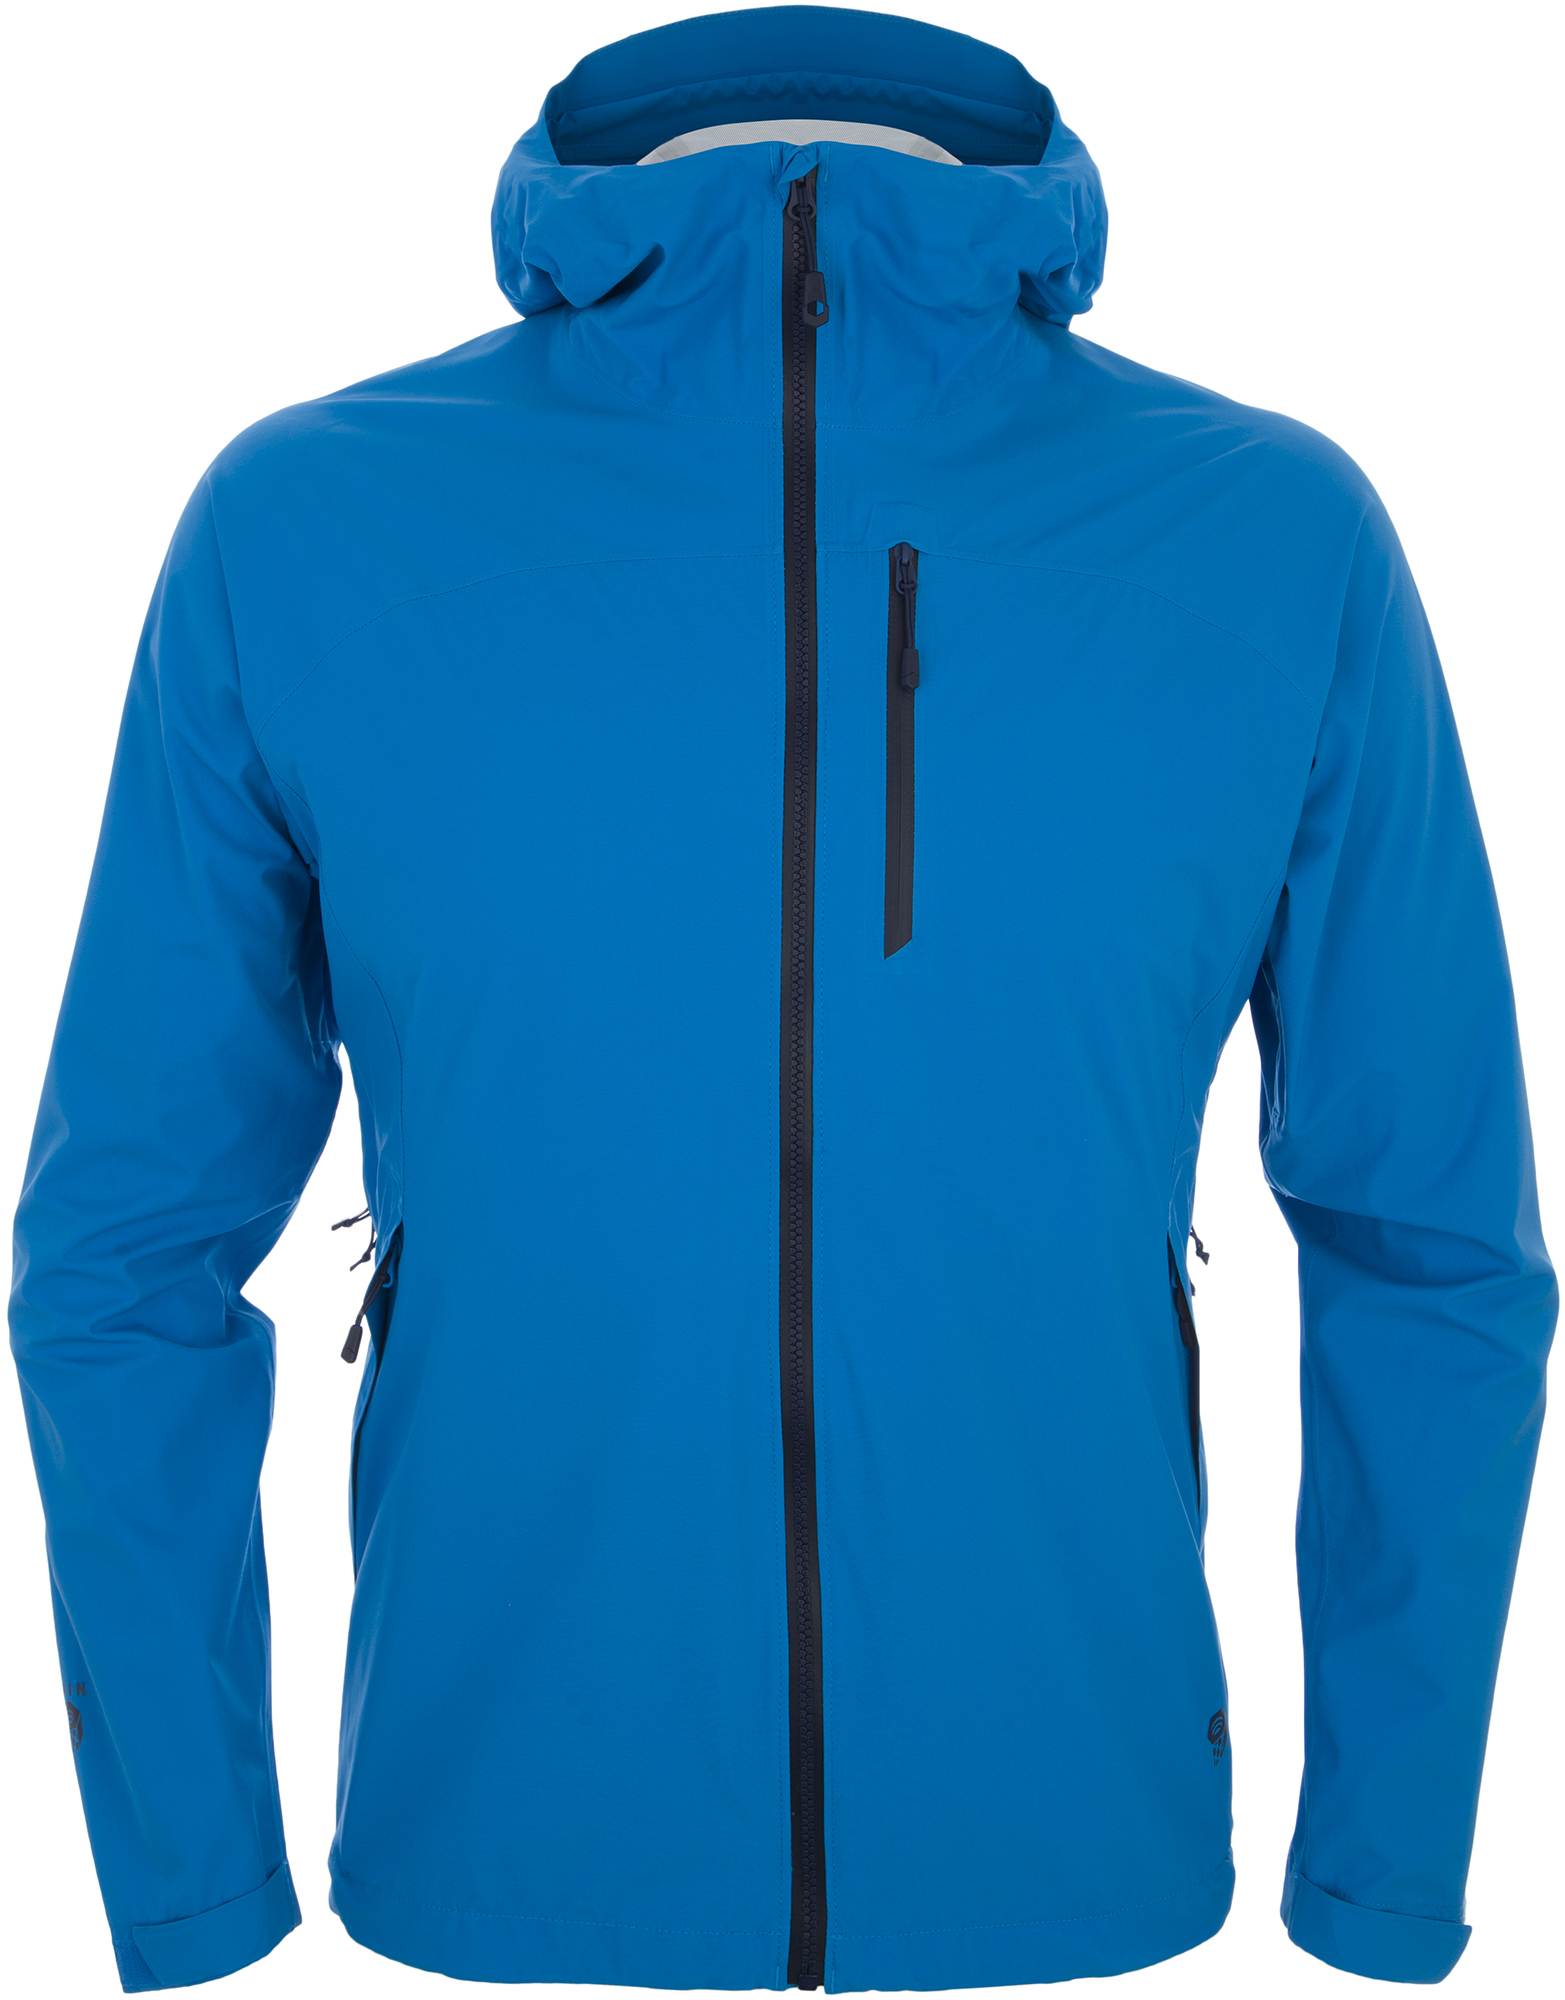 Mountain Hardwear Ветровка женская Mountain Hardwear Stretch Ozonic, размер 50 цена